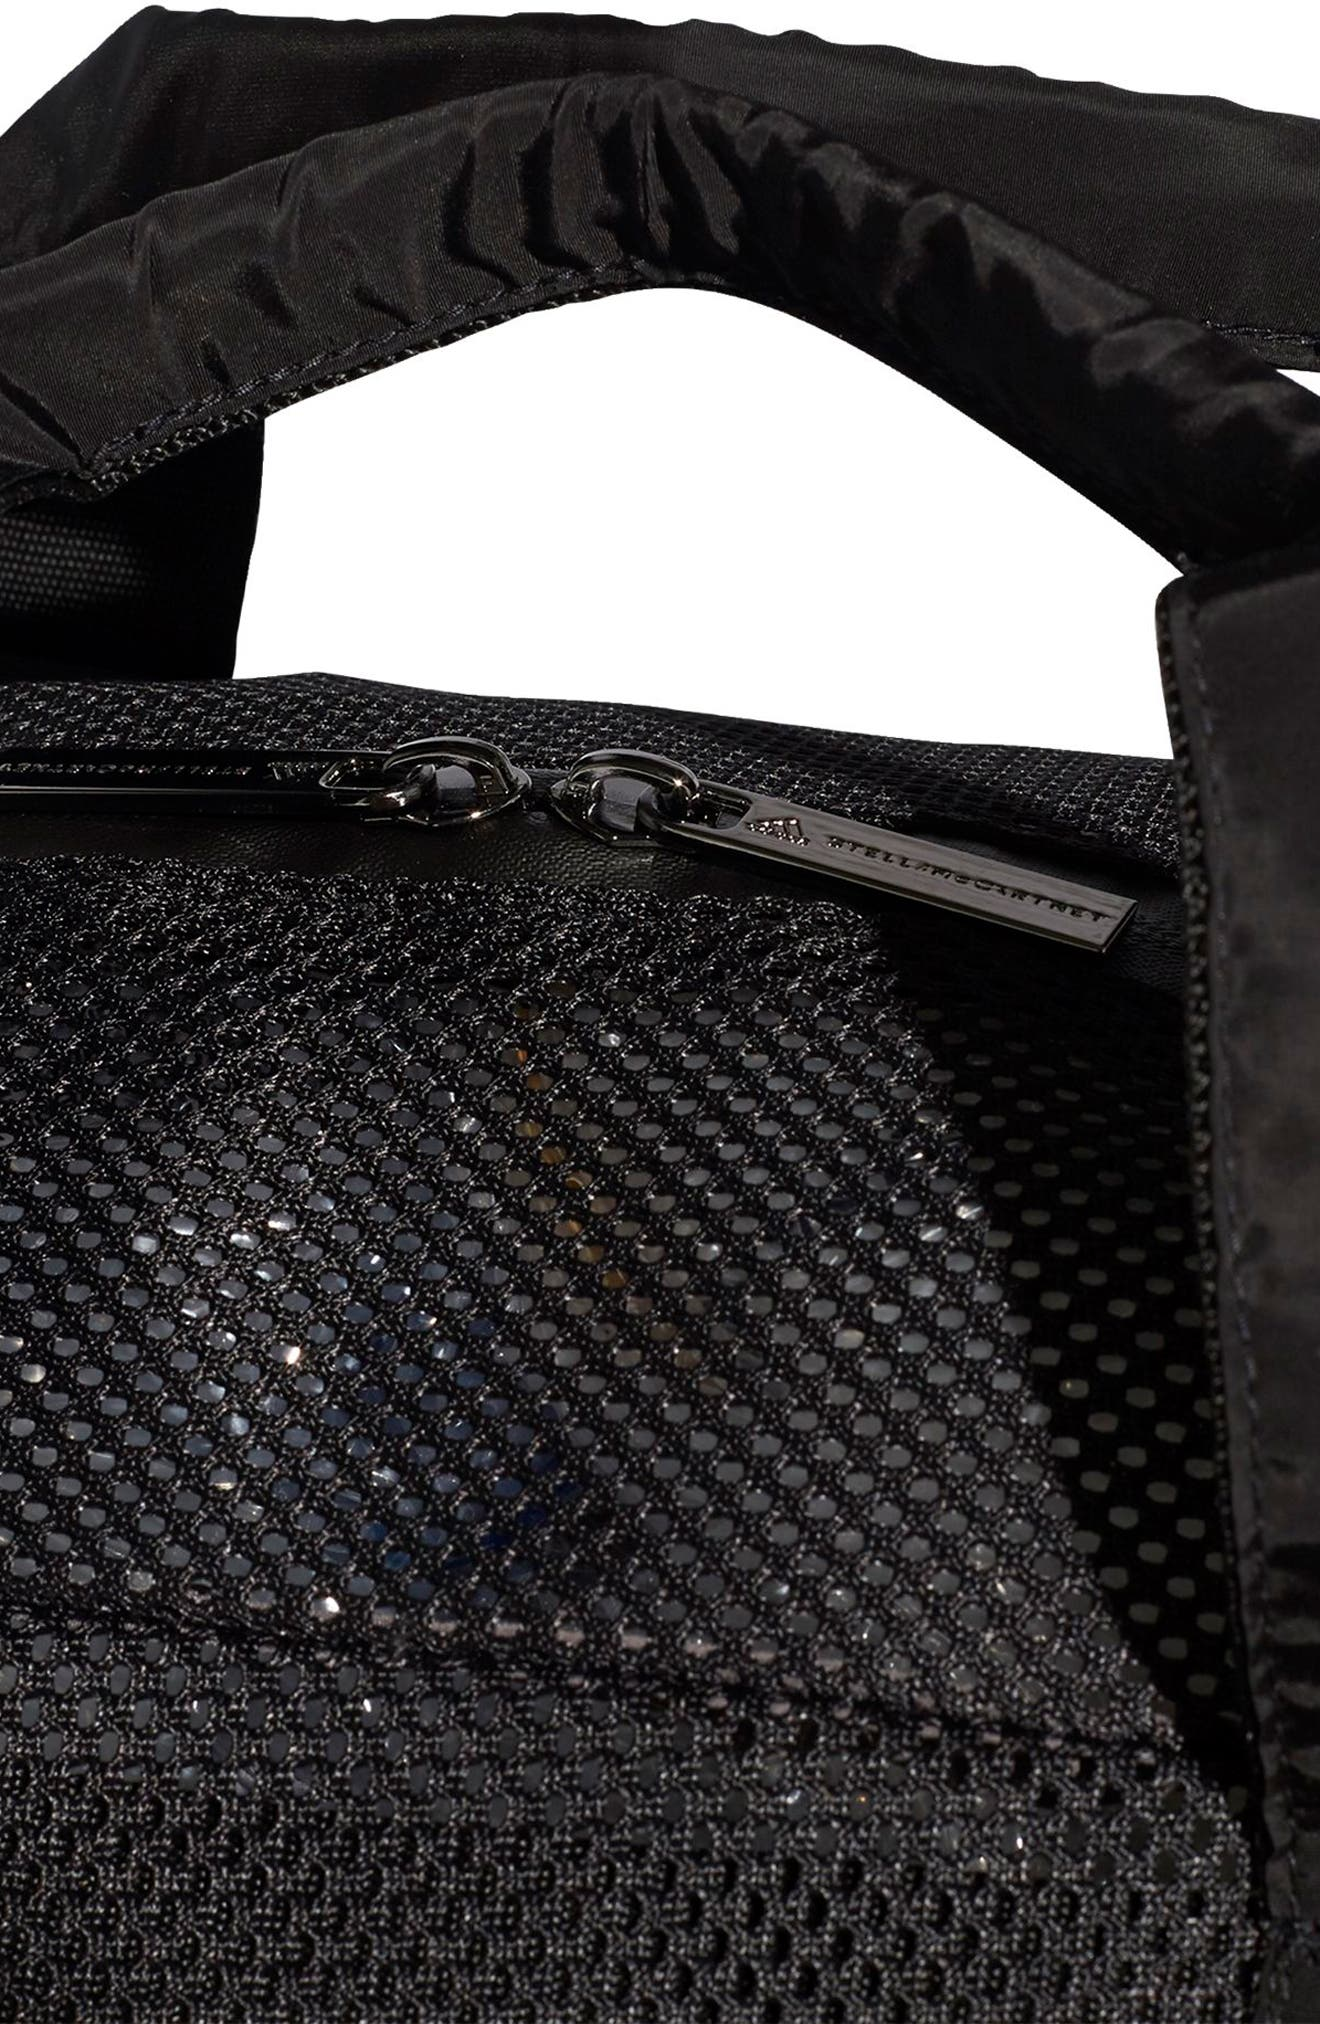 Mesh Yoga Bag,                             Alternate thumbnail 6, color,                             BLACK/ BLACK